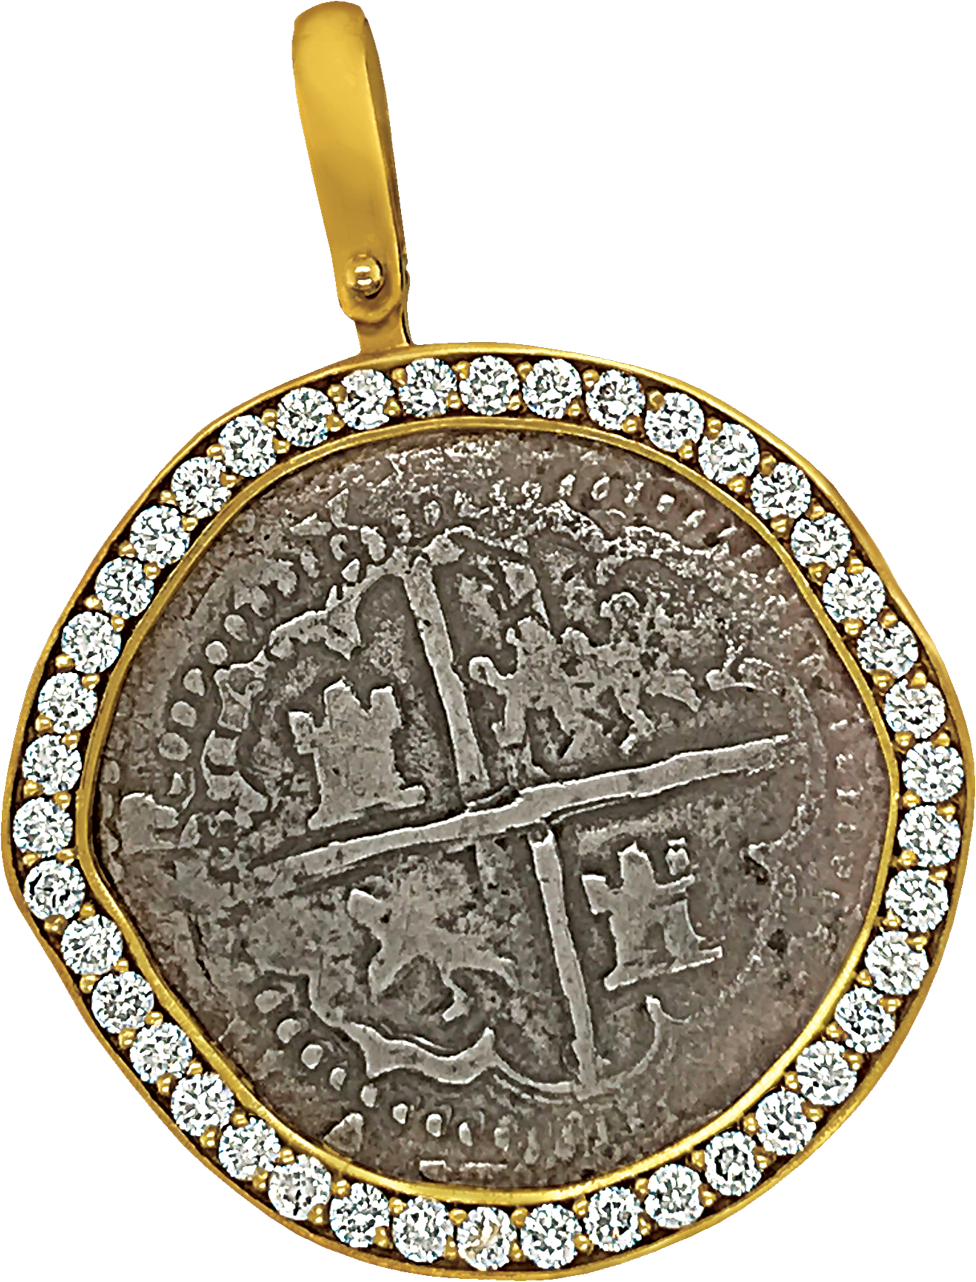 Treasure Coin & Artifacts featured jewelry item